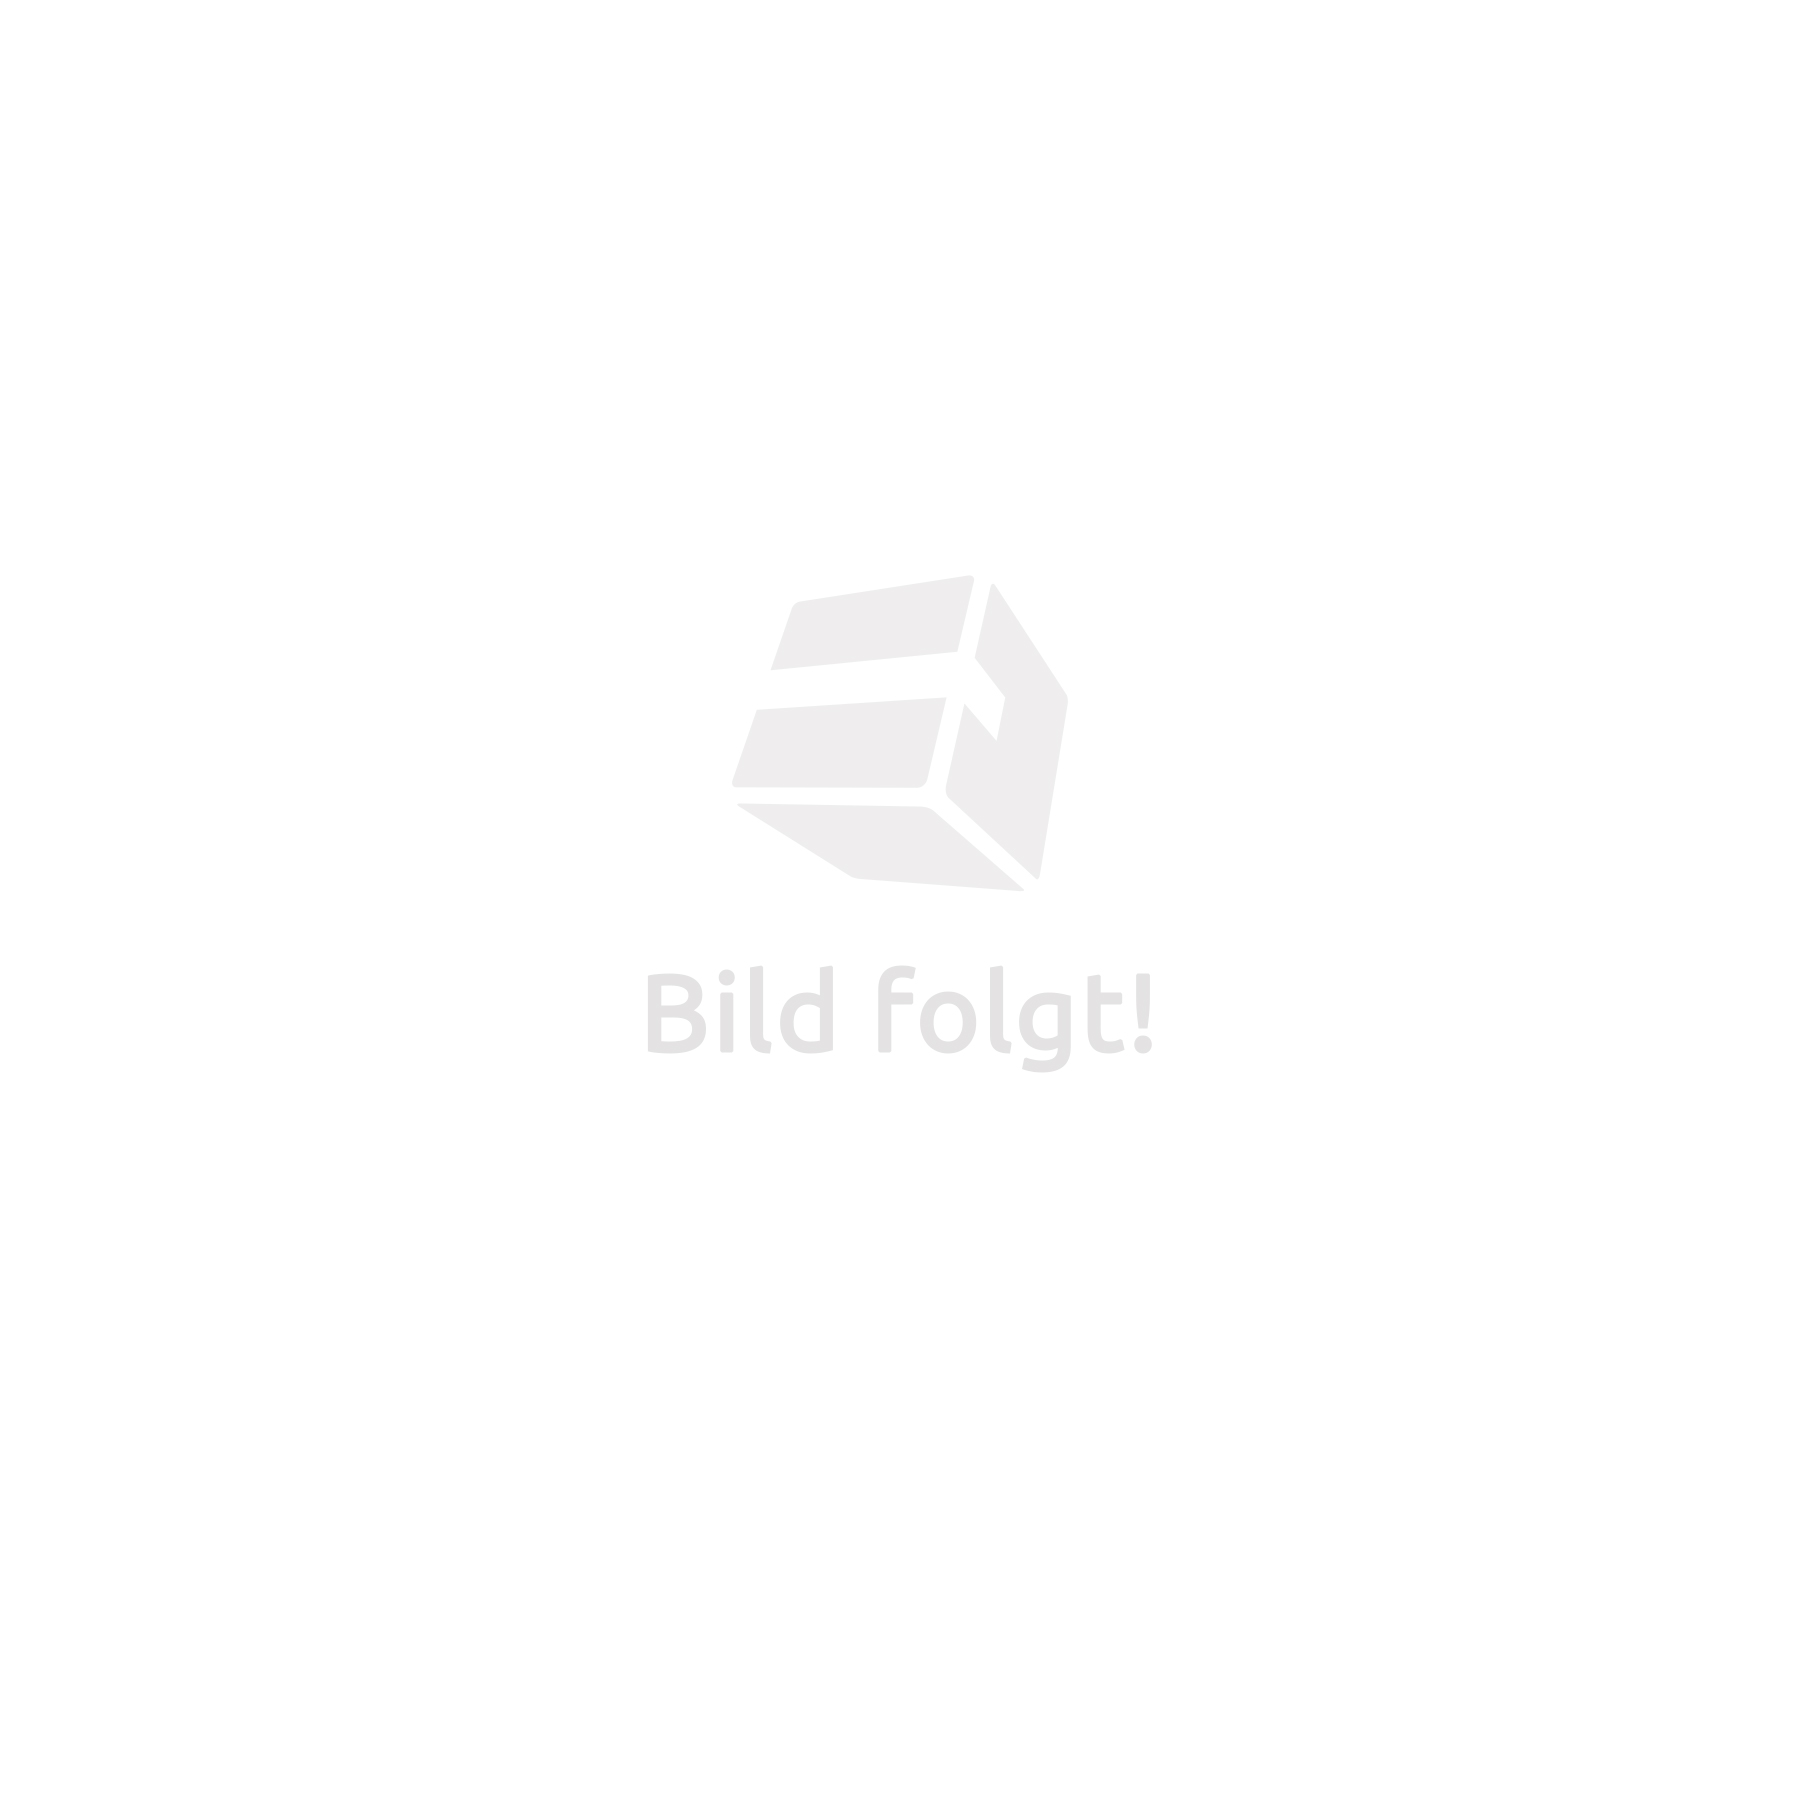 rattan garden furniture set chairs sofa table outdoor patio balkon terazze 4 pie ebay. Black Bedroom Furniture Sets. Home Design Ideas